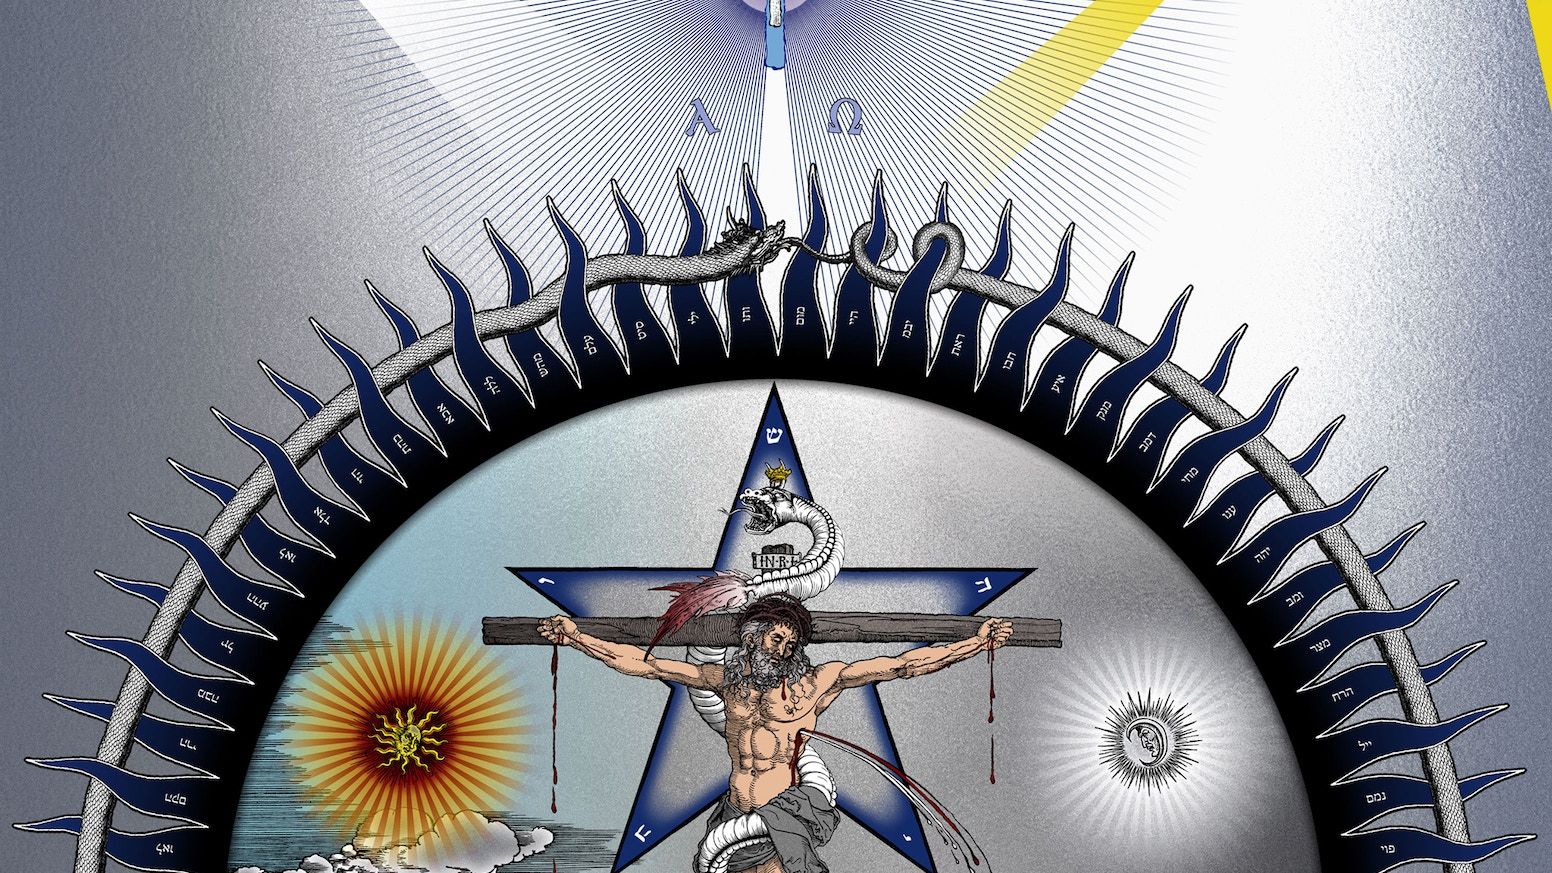 Serpent on the Cross: The Ancient Occult Path to Liberation by